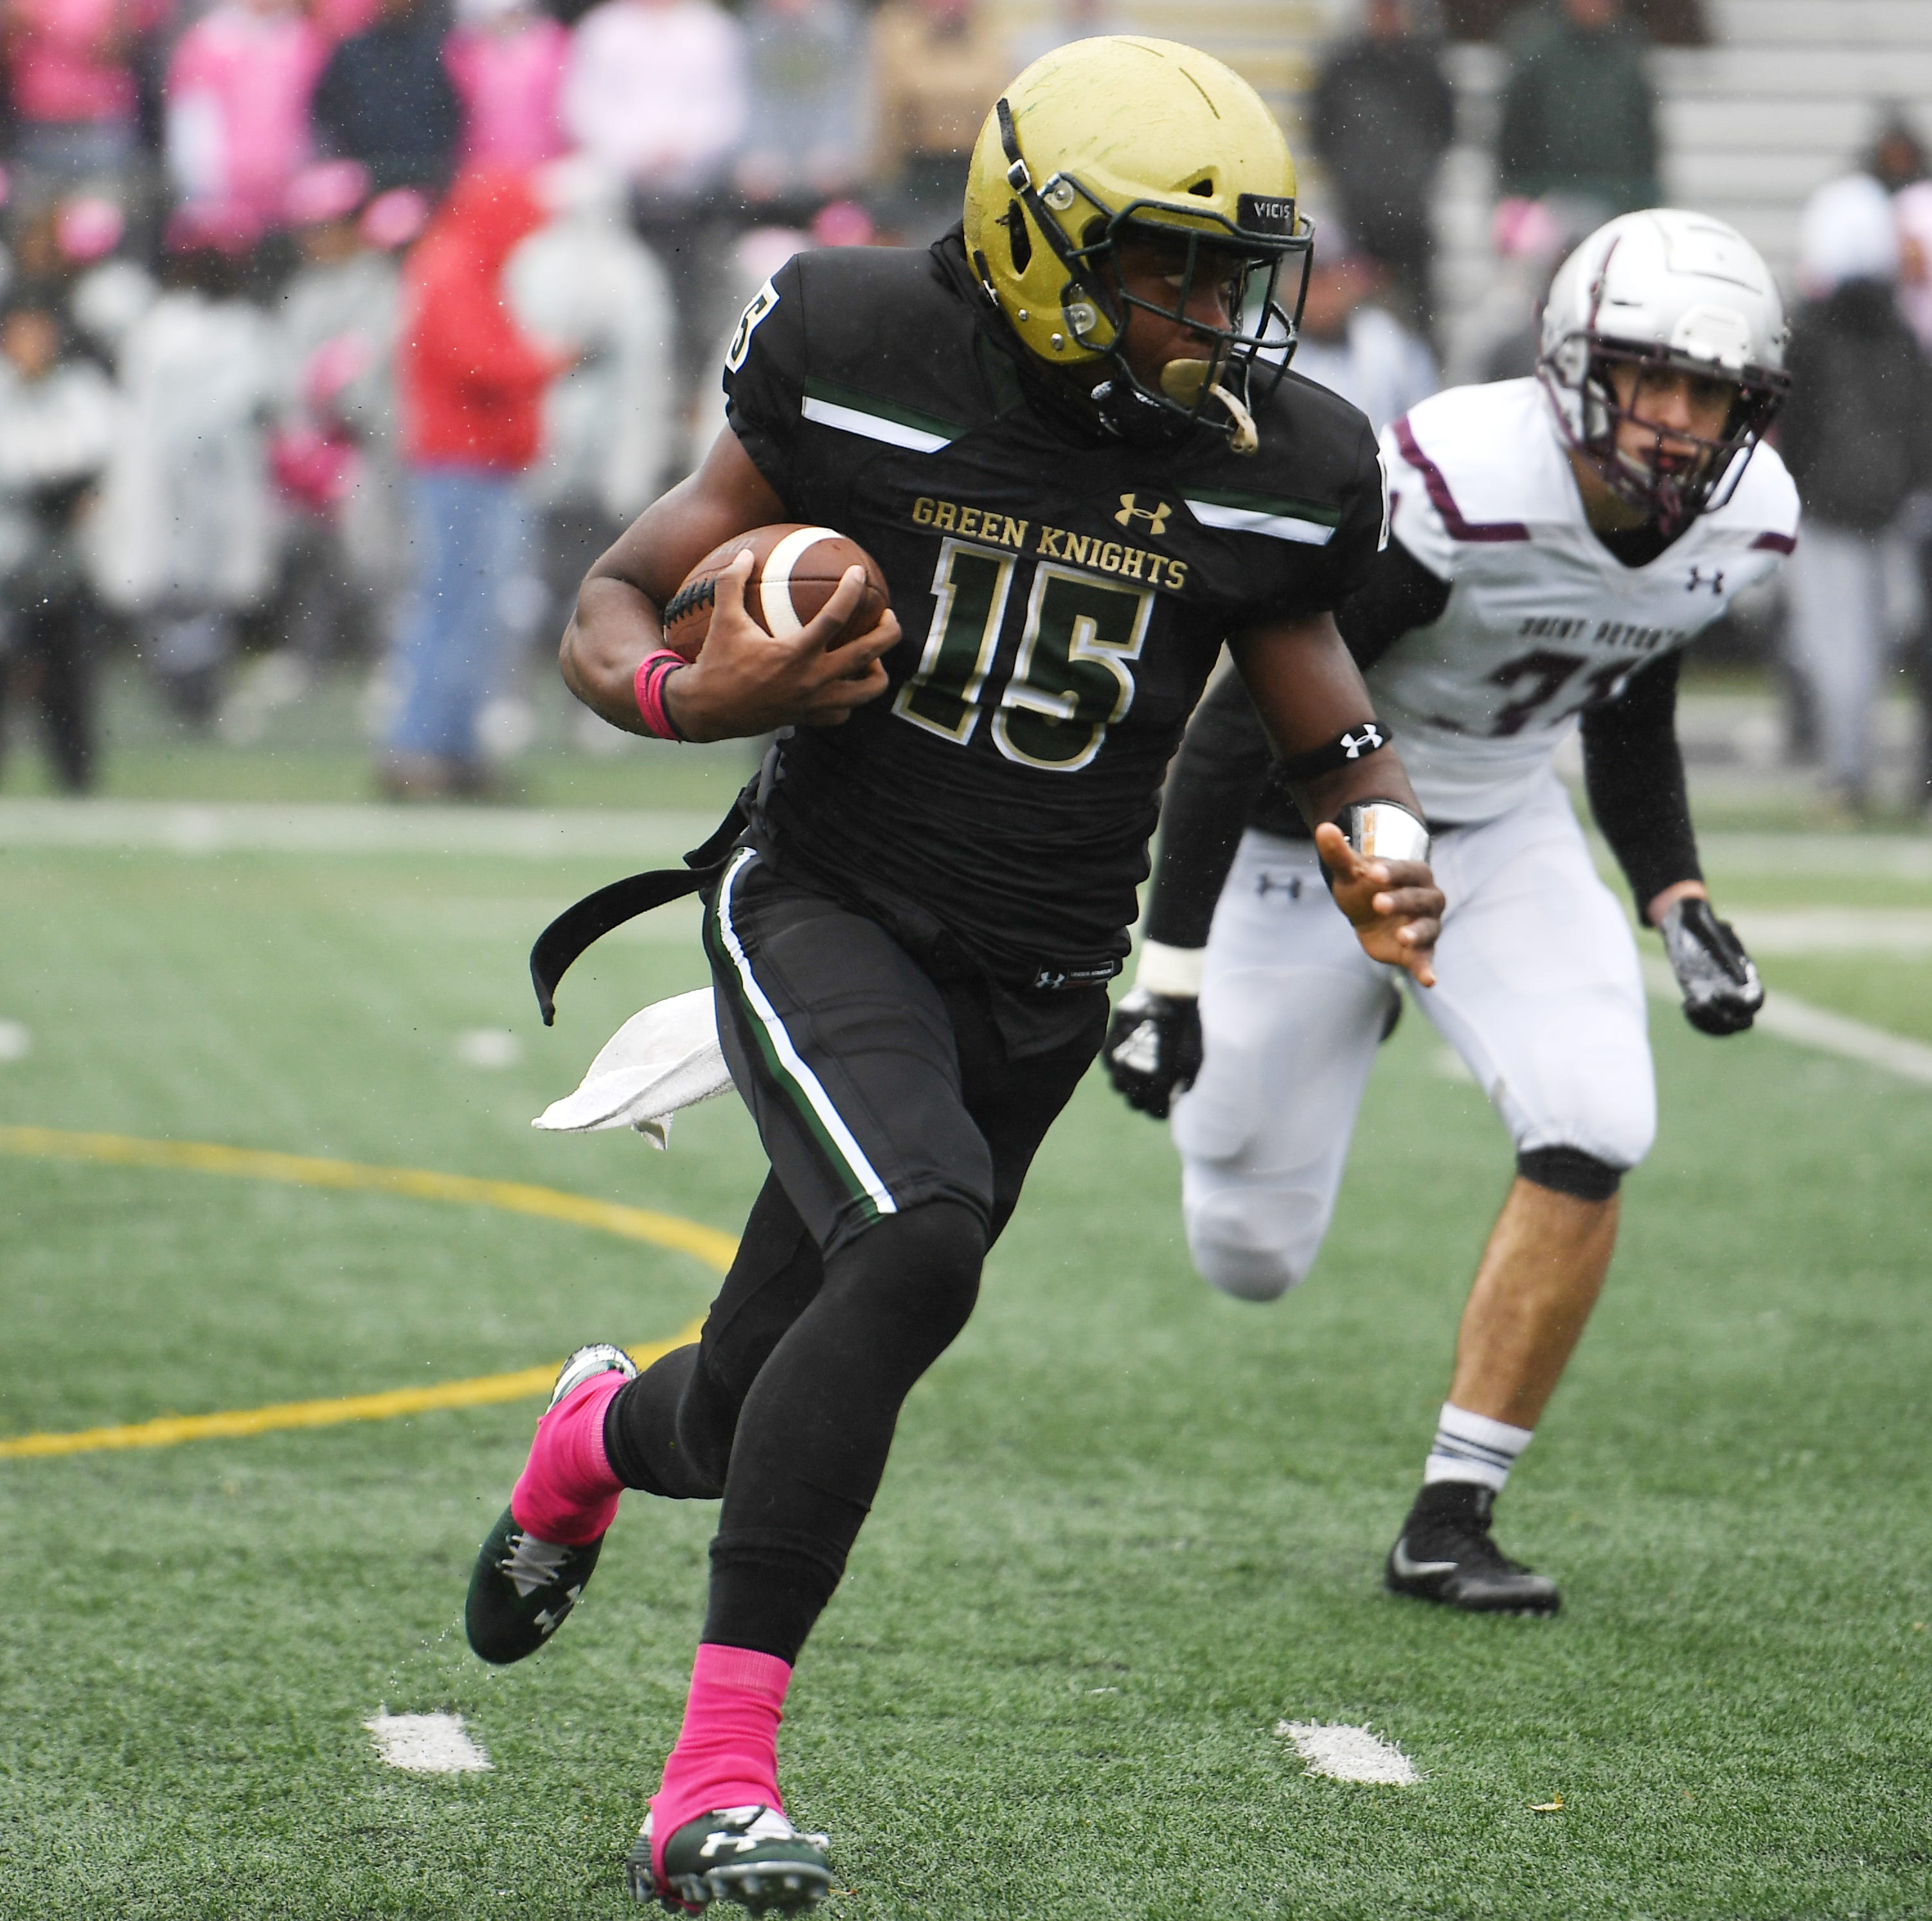 St. Joseph football beats St. Peter's Prep to move on to Non-Public 4 final